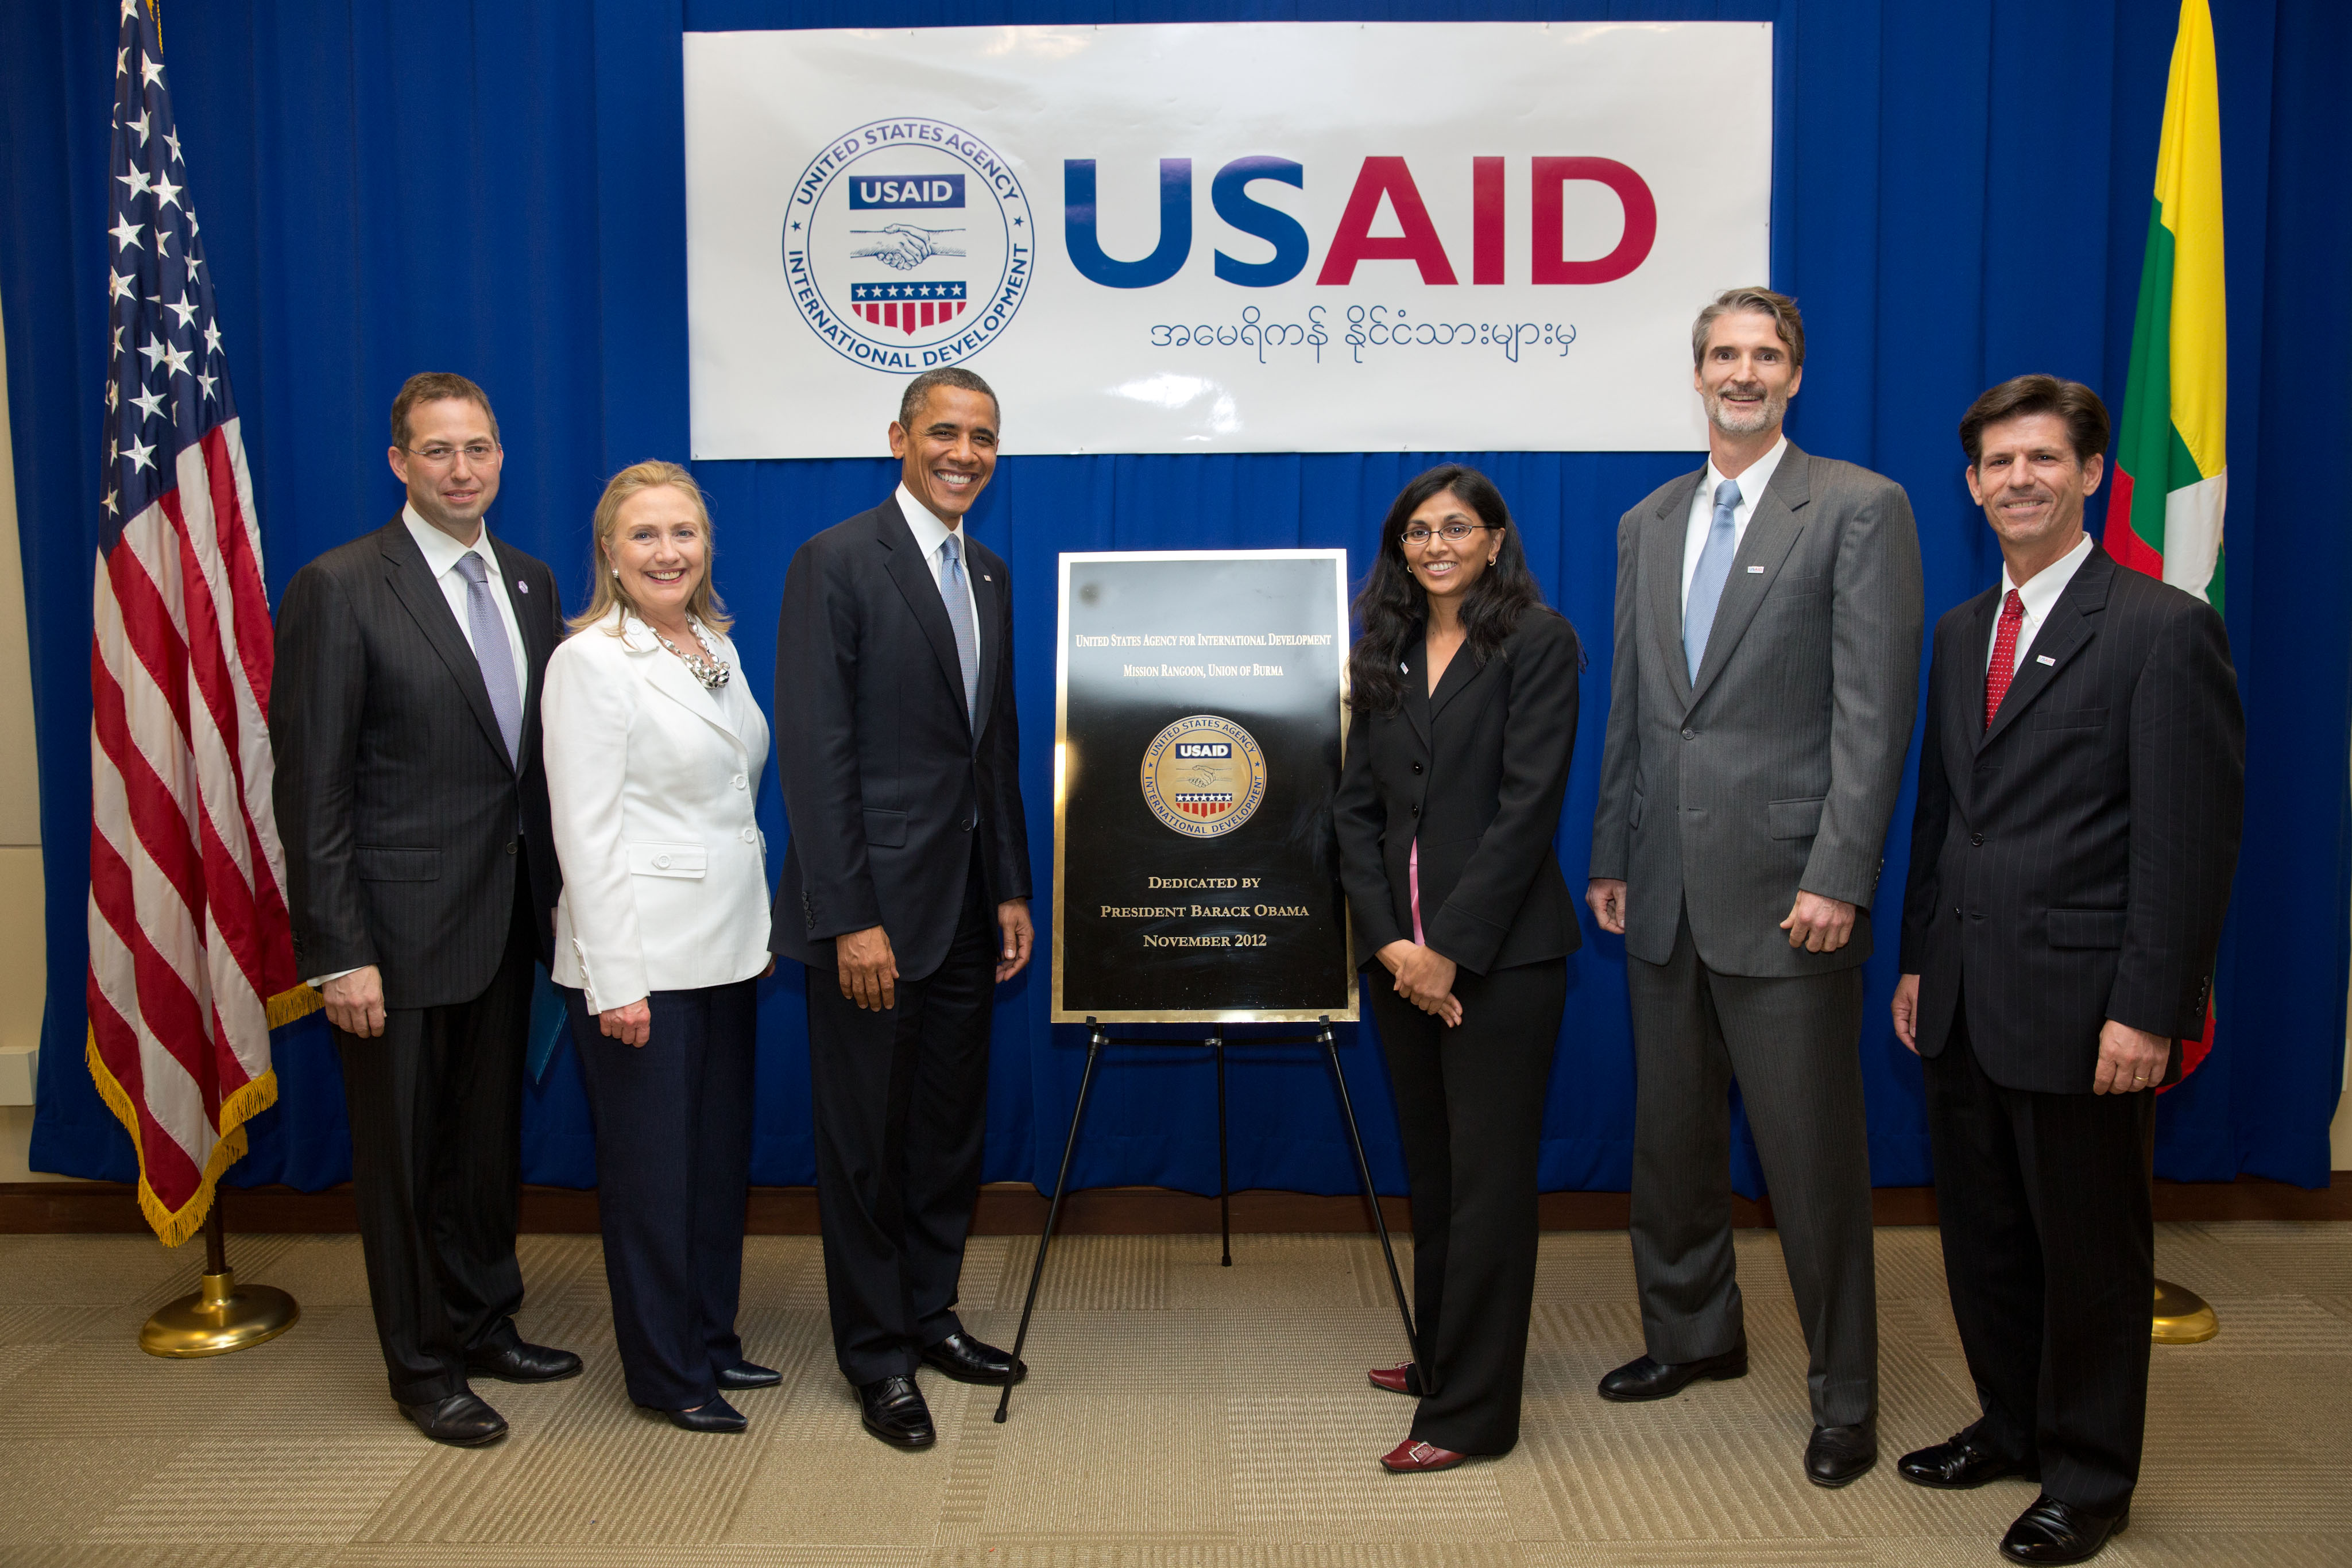 President Barack Obama and Secretary of State Hillary Rodham Clinton pose for a photo with USAID staff at the U.S. Embassy in Rangoon, Burma, Nov. 19, 2012. Participants include: Nisha Biswal, USAID Assistant Administrator for Asia Bureau; Chris Milligan, USAID Burma Mission Director; and Greg Beck, USAID Deputy Assistant Administrator